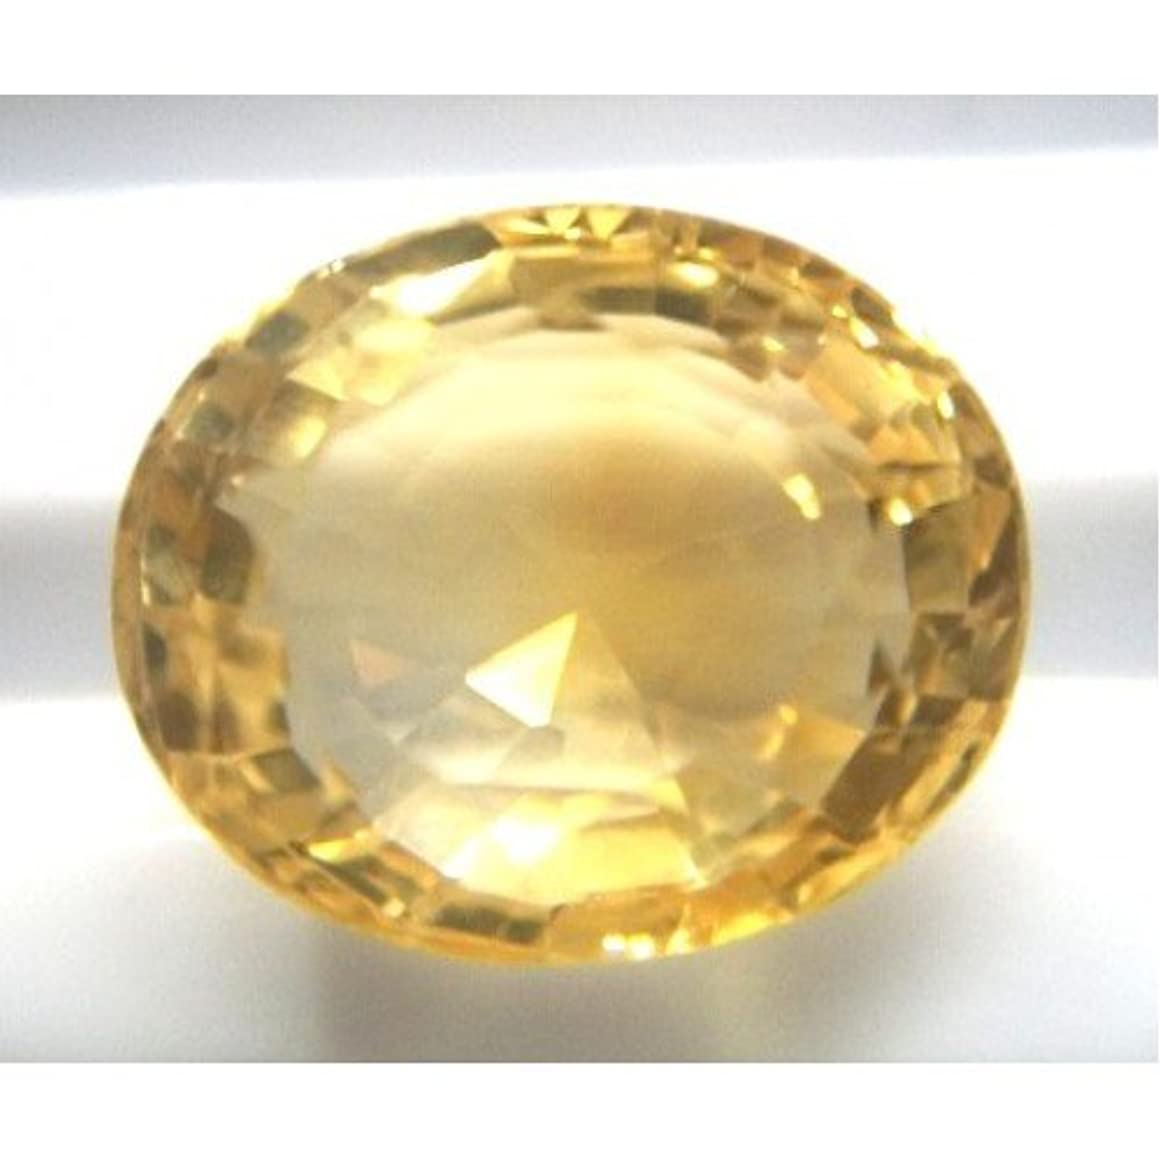 聡明テスト防止sunela石元Certified Natural Citrine Gemstone 13.9 Carat By gemselect